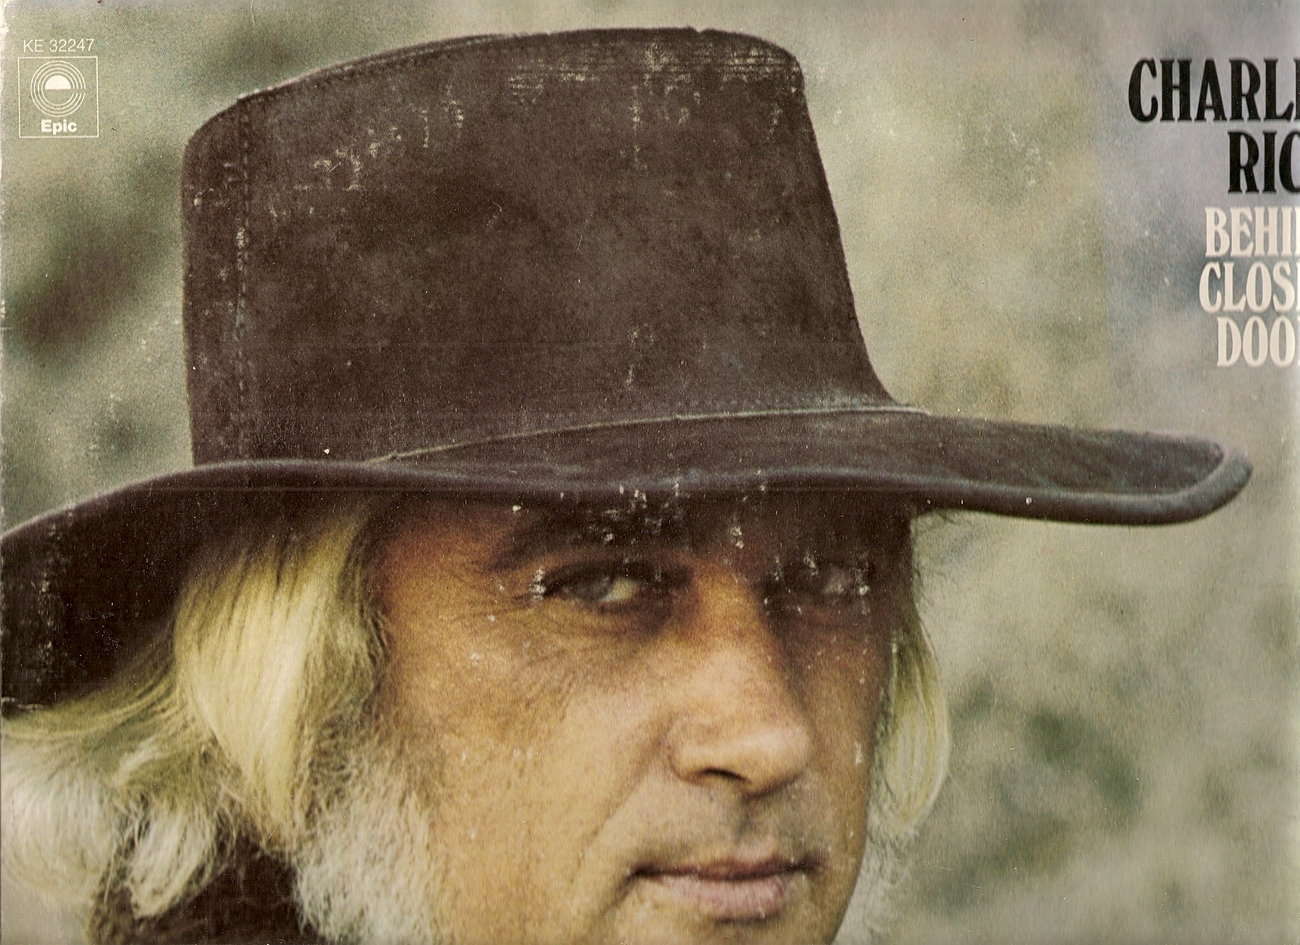 LP--Charlie Rich - Behind Closed Doors